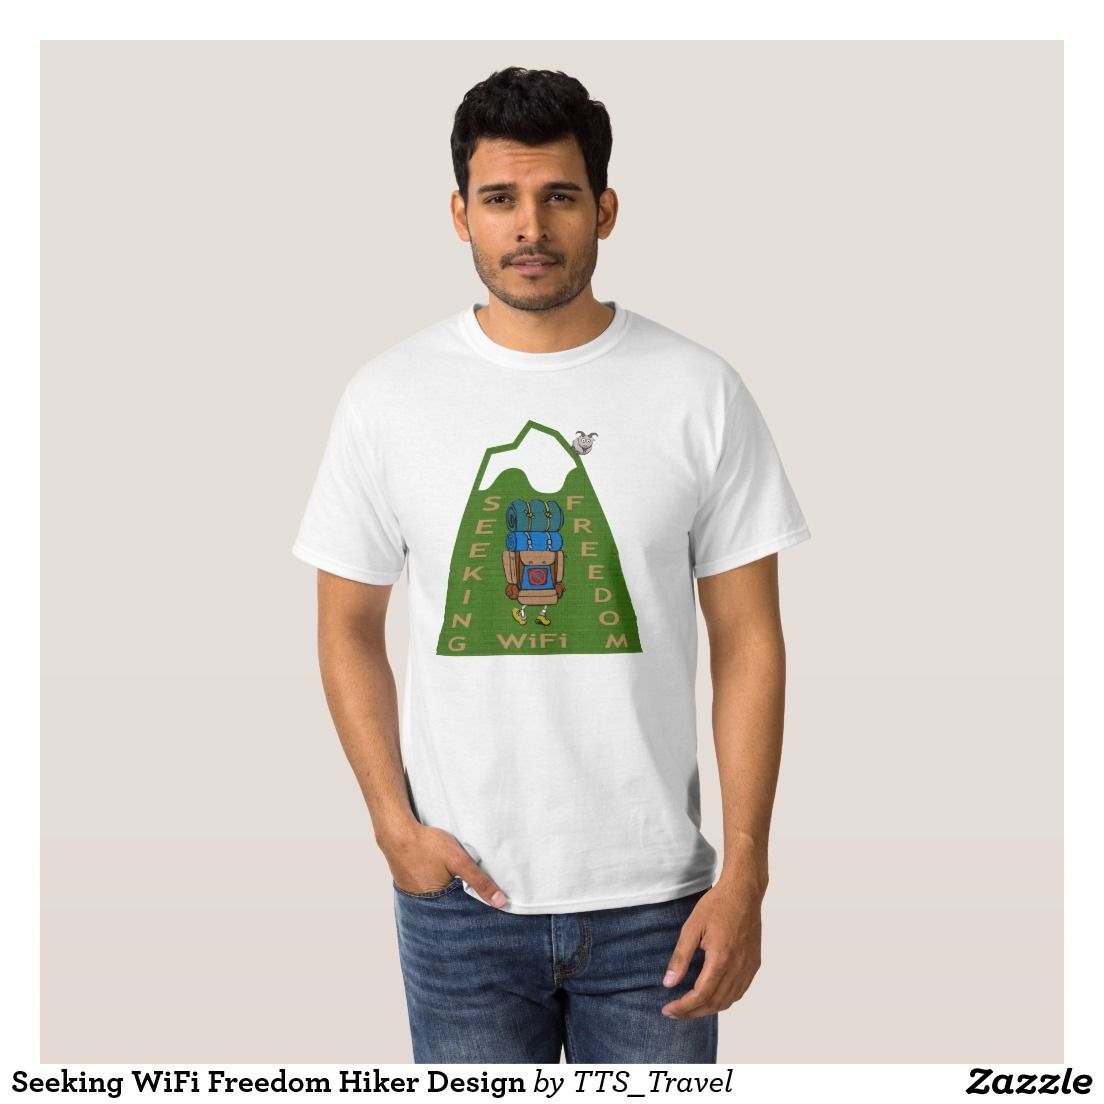 Design t shirt zazzle - Seeking Wifi Freedom Hiker Design T Shirt